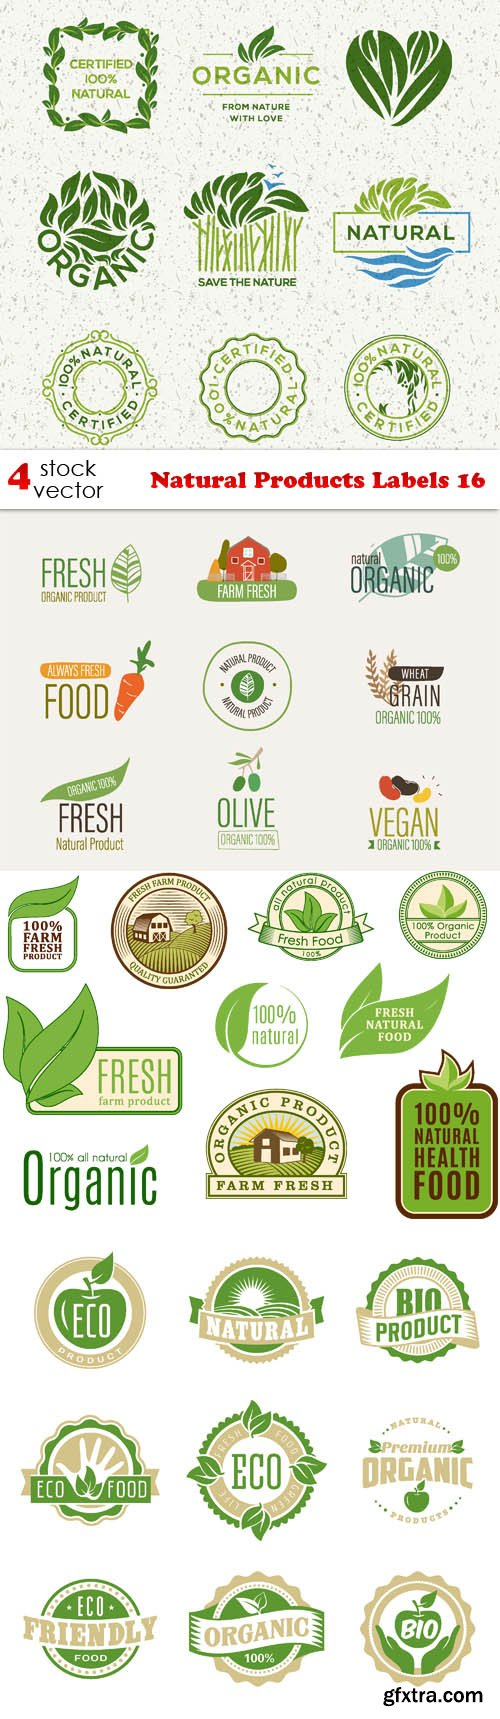 Vectors - Natural Products Labels 16